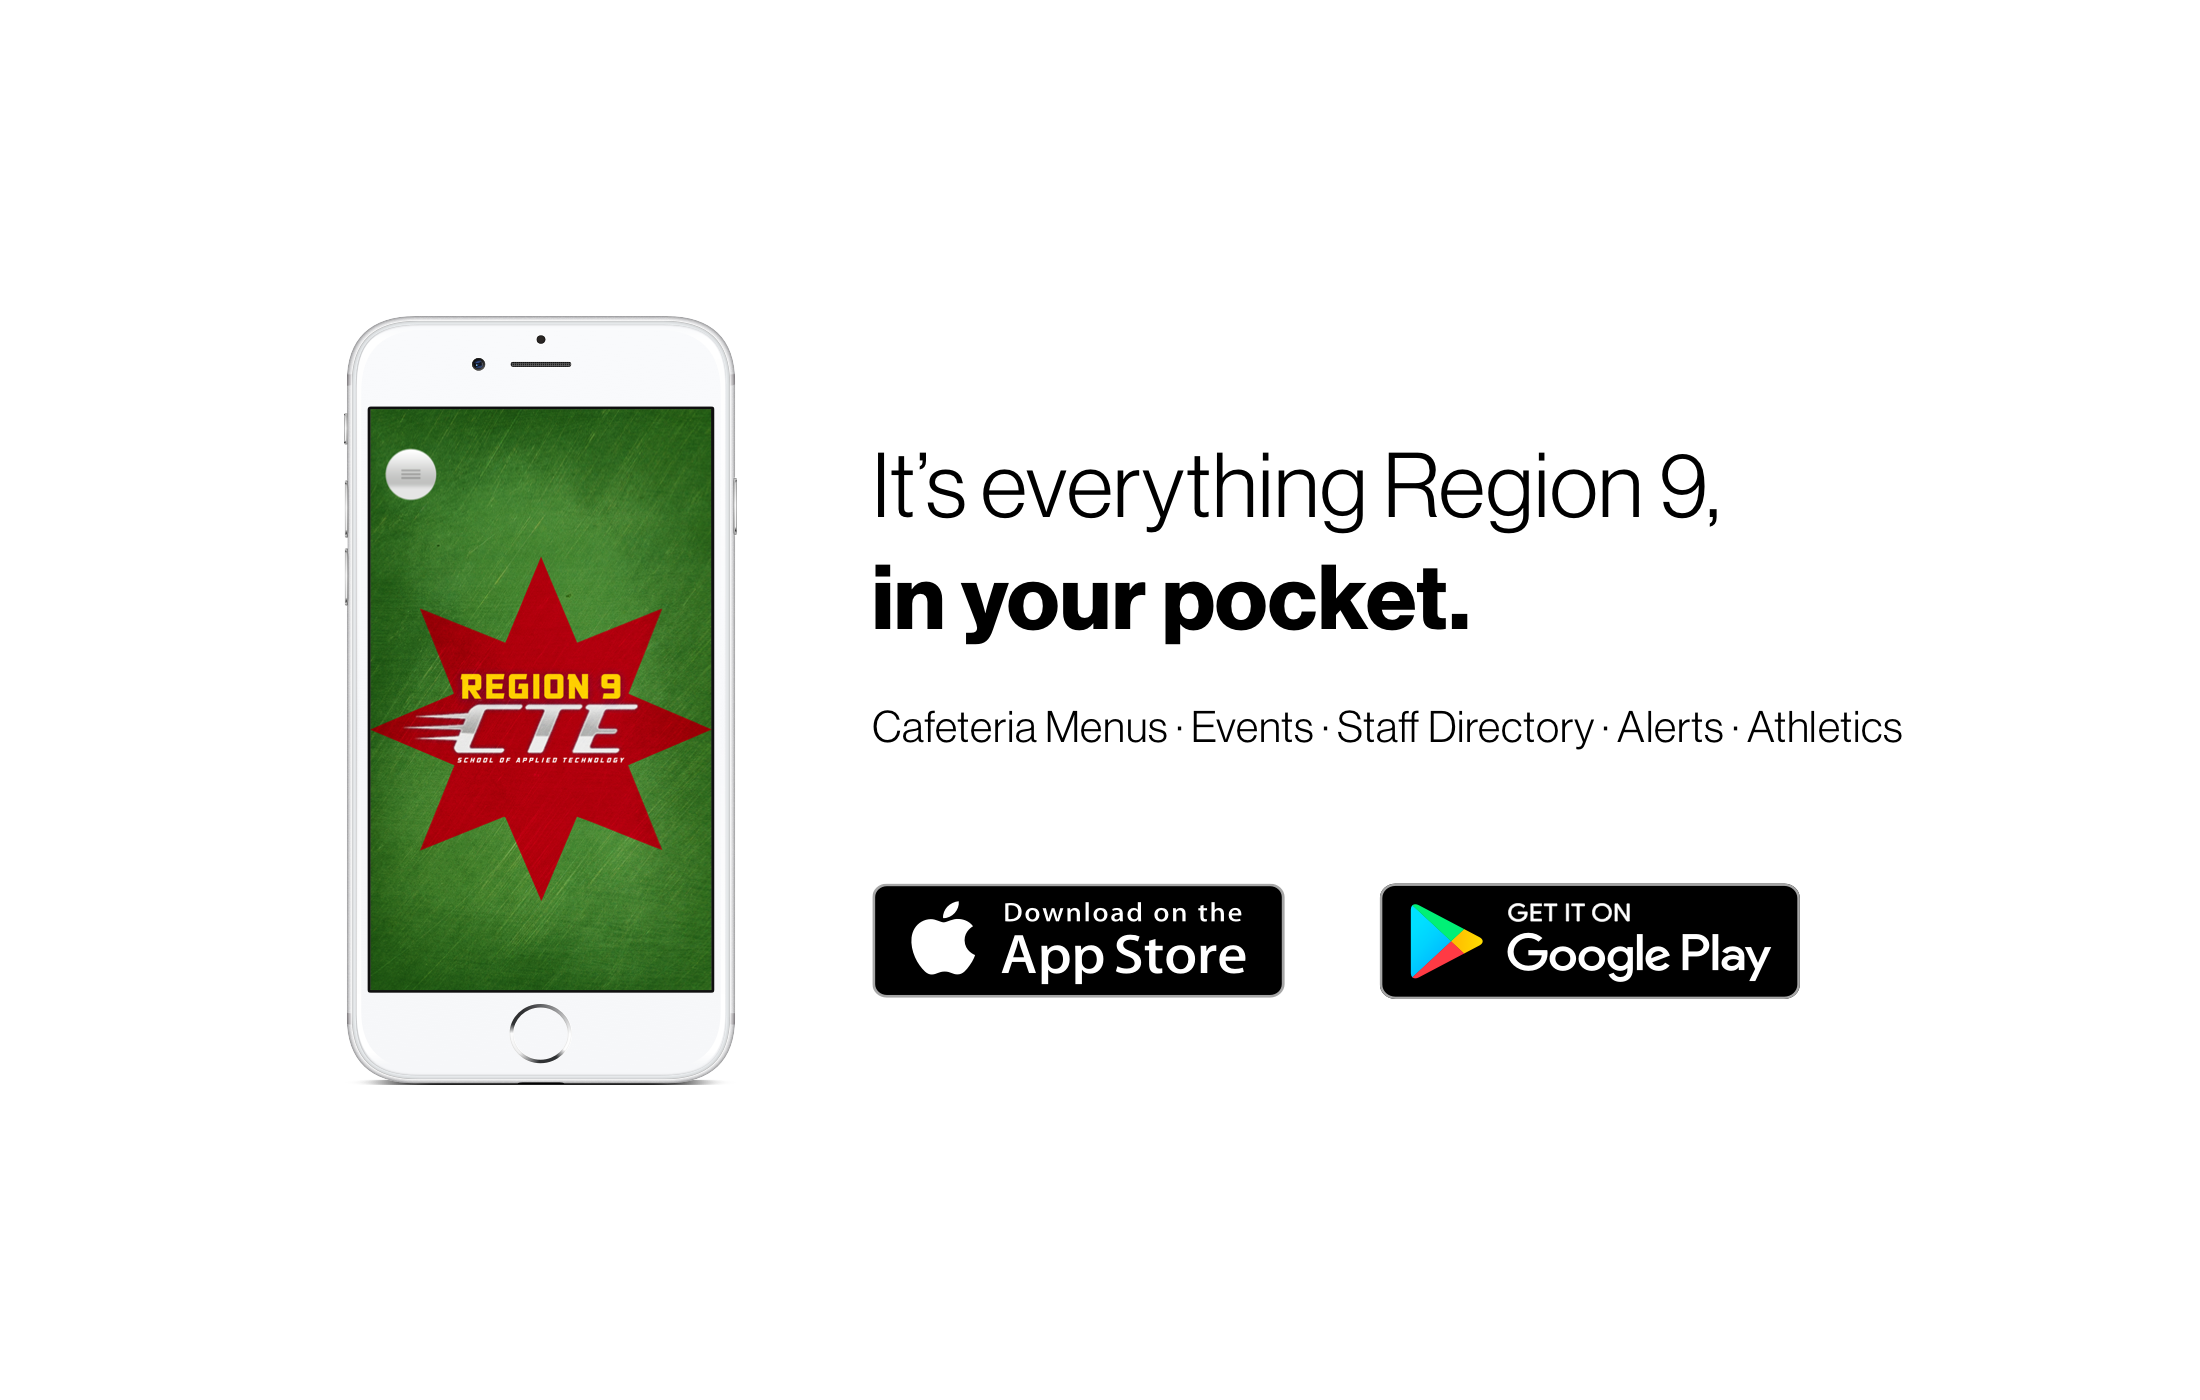 It's everything Region 9, in your pocket.